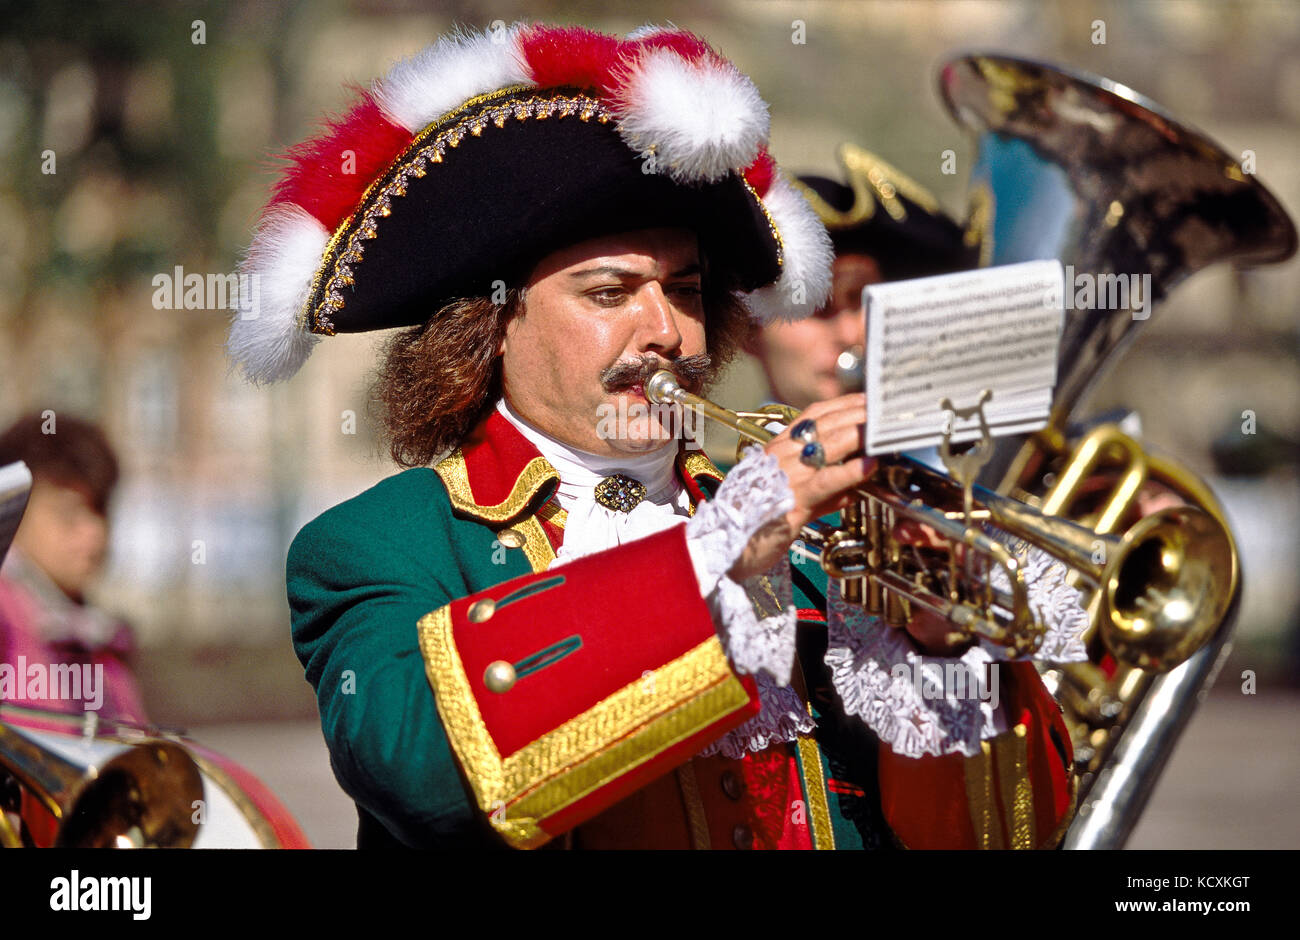 Celebration of the 300th anniversary of the city of St. Petersburg - Stock Image